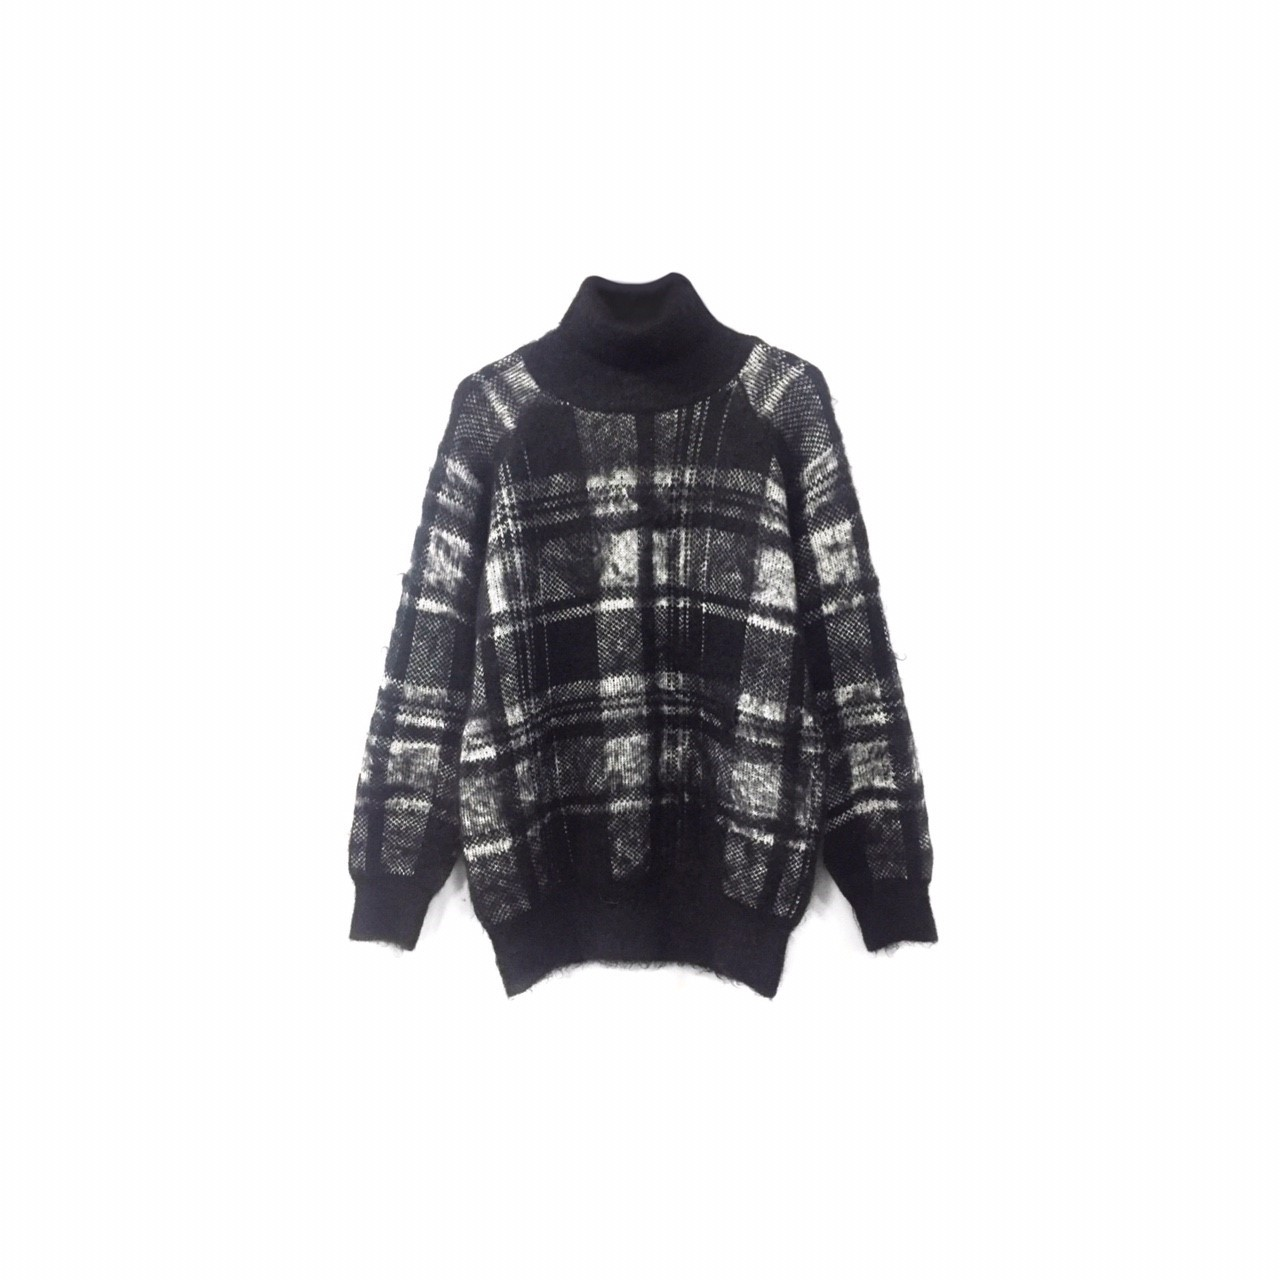 LE CIEL BLUE - Mohair Check Turtleneck Knit ¥9500+tax→¥6500+tax